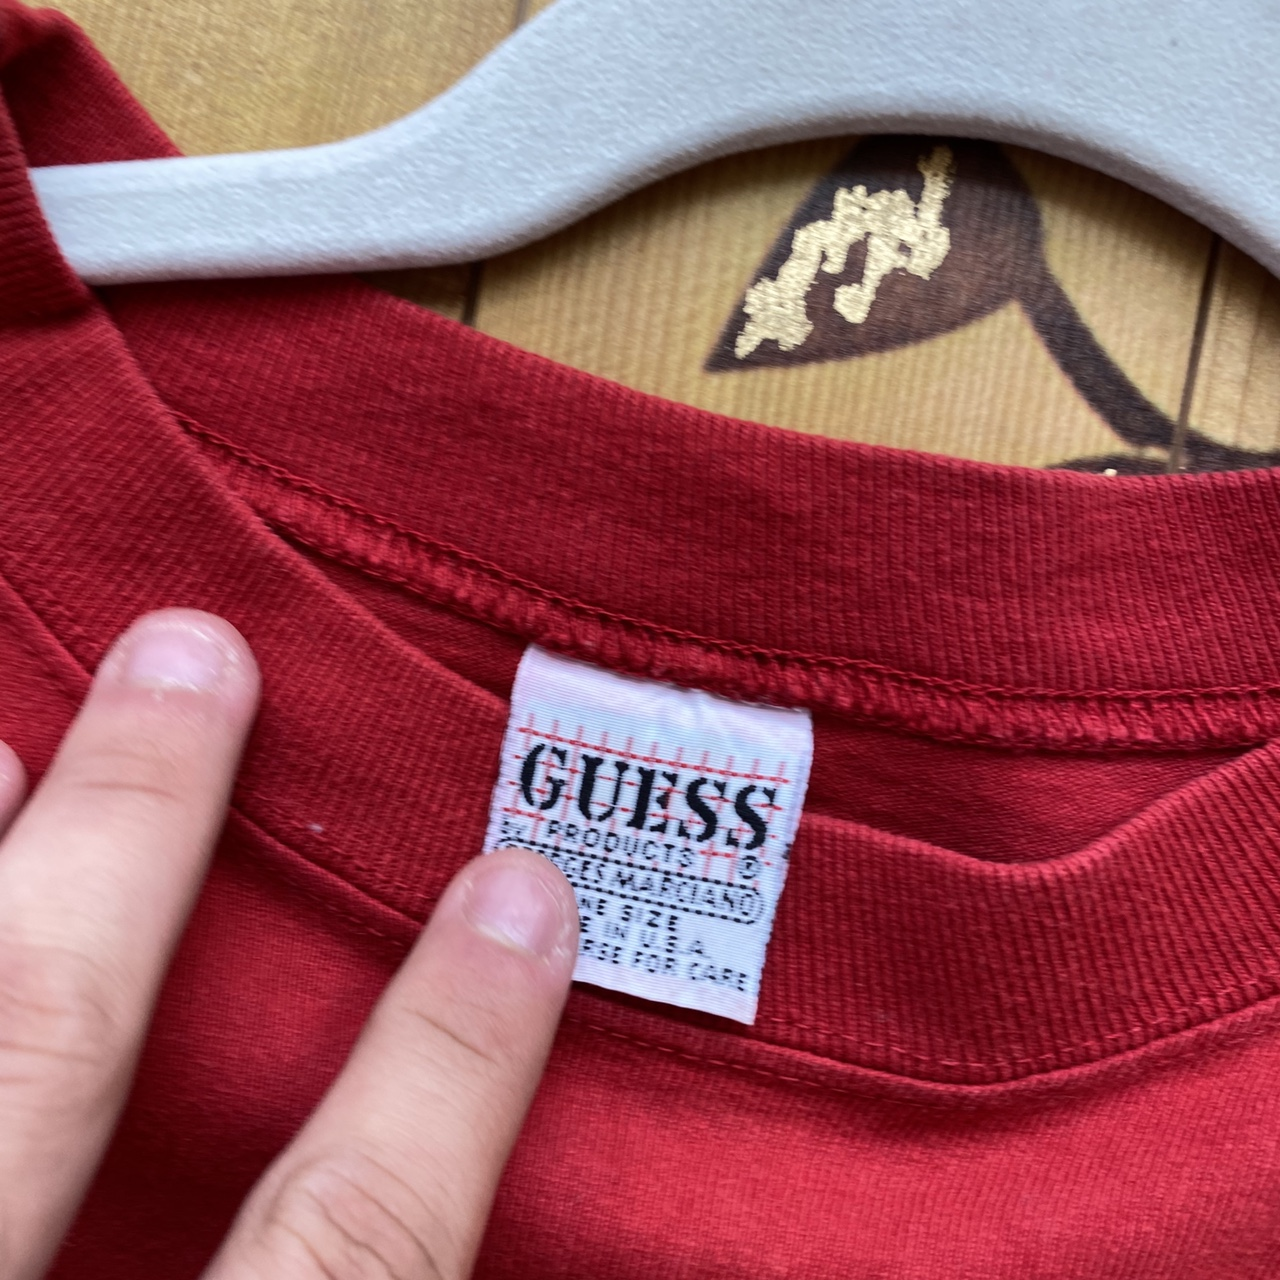 Product Image 2 - Vintage guess tee Fits like large